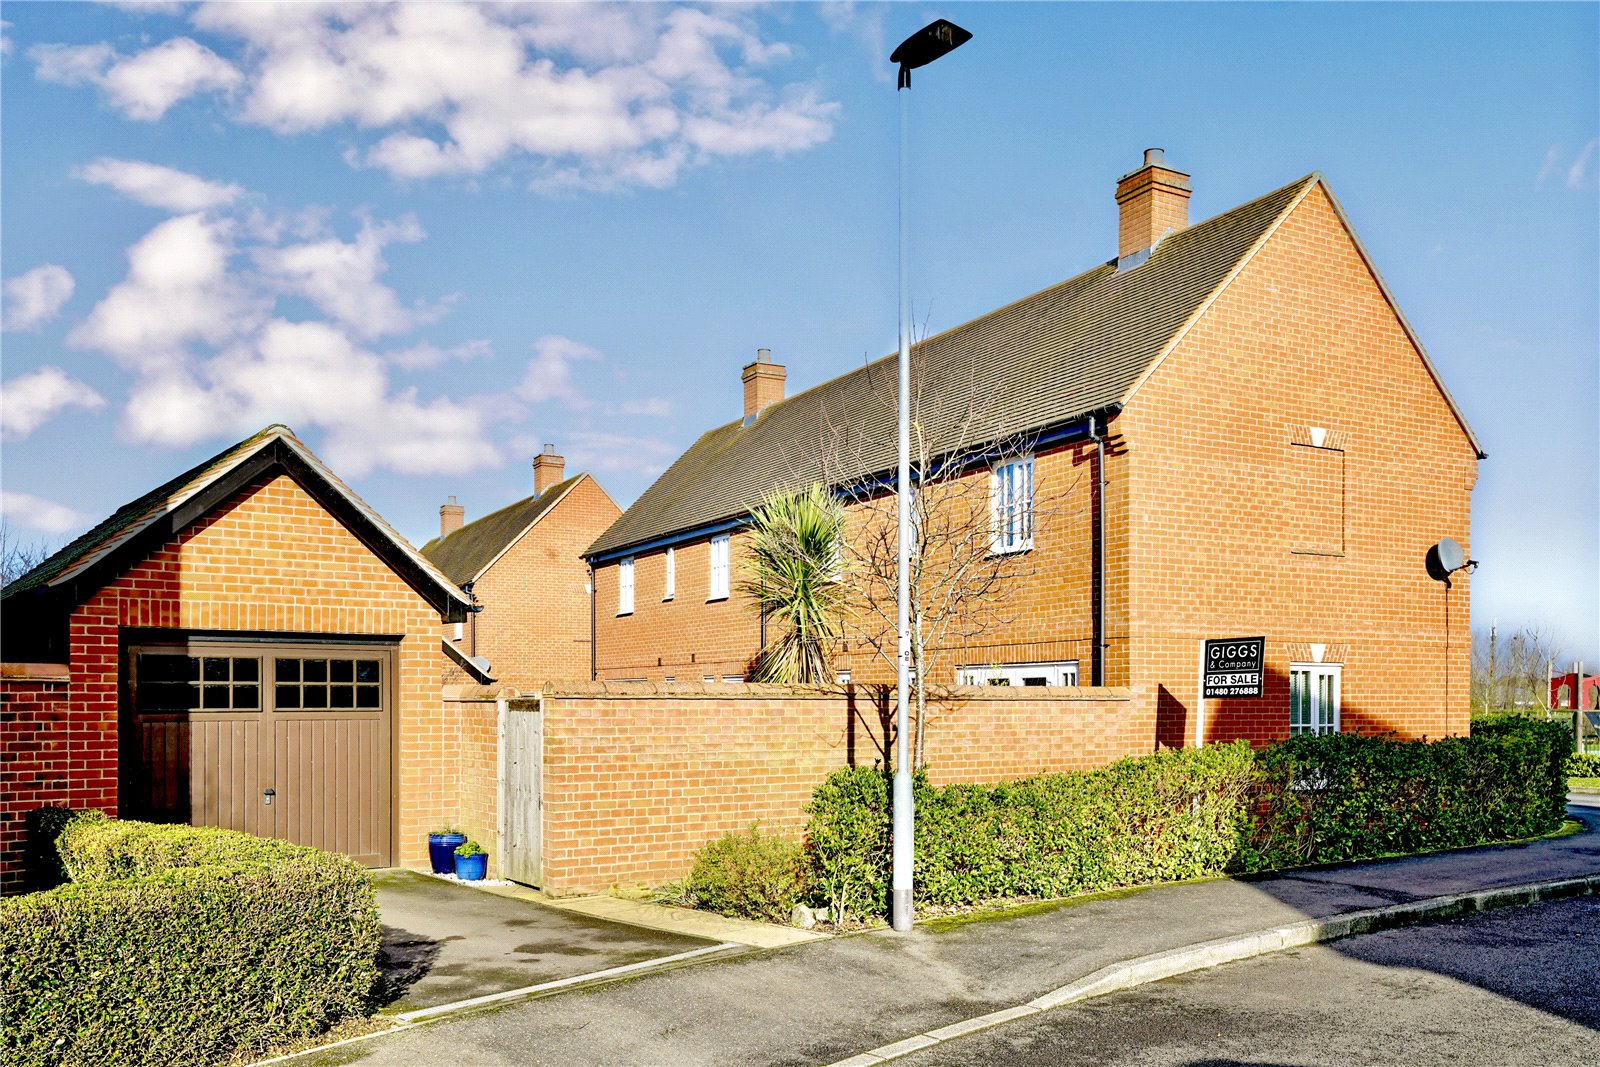 3 bed house for sale in Woodpecker Close, Great Barford  - Property Image 9